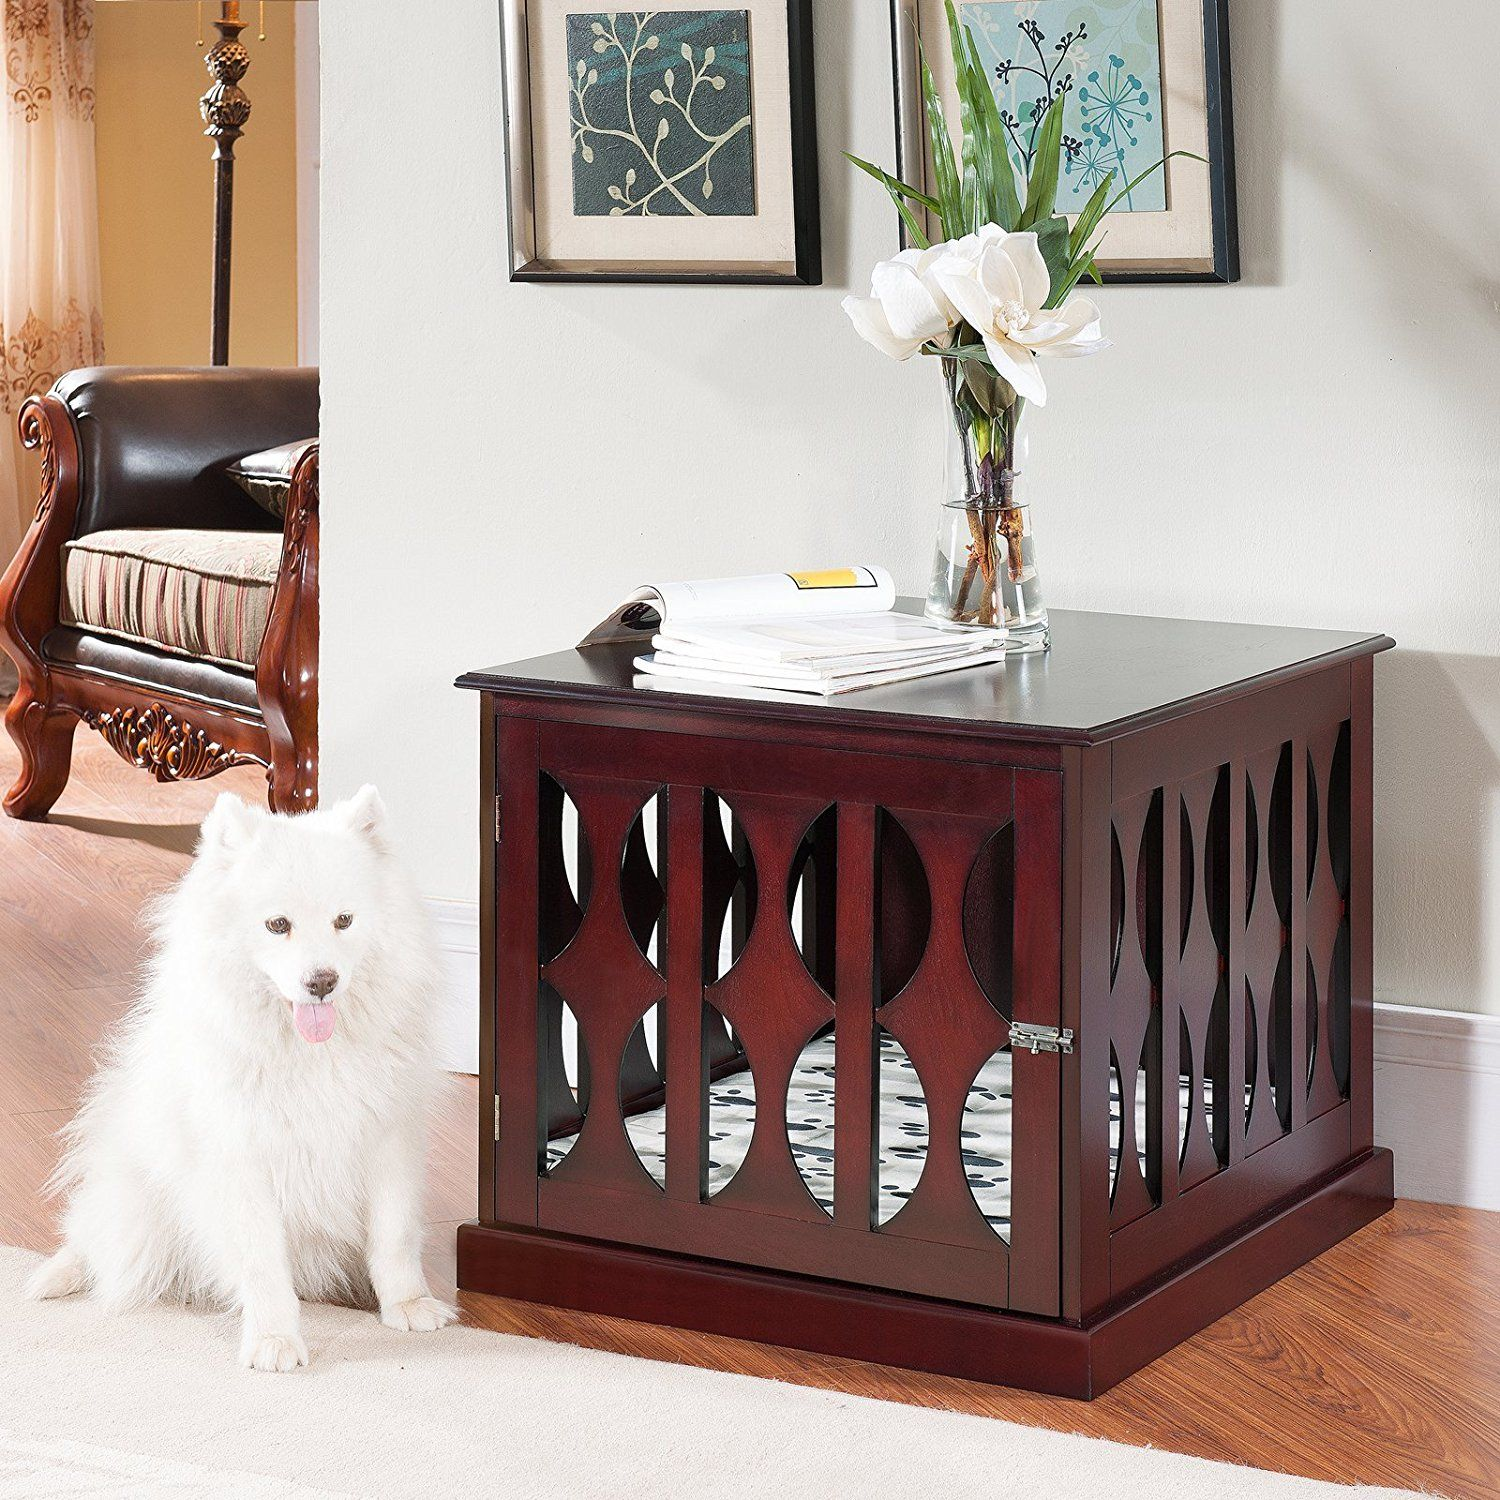 #dog Crate Furniture, #dog Crate End Table, #decorative Dog Crates, #furniture  Dog Crates, #dog Kennel Furniture, #dog Crates That Look Like Furniture, ...